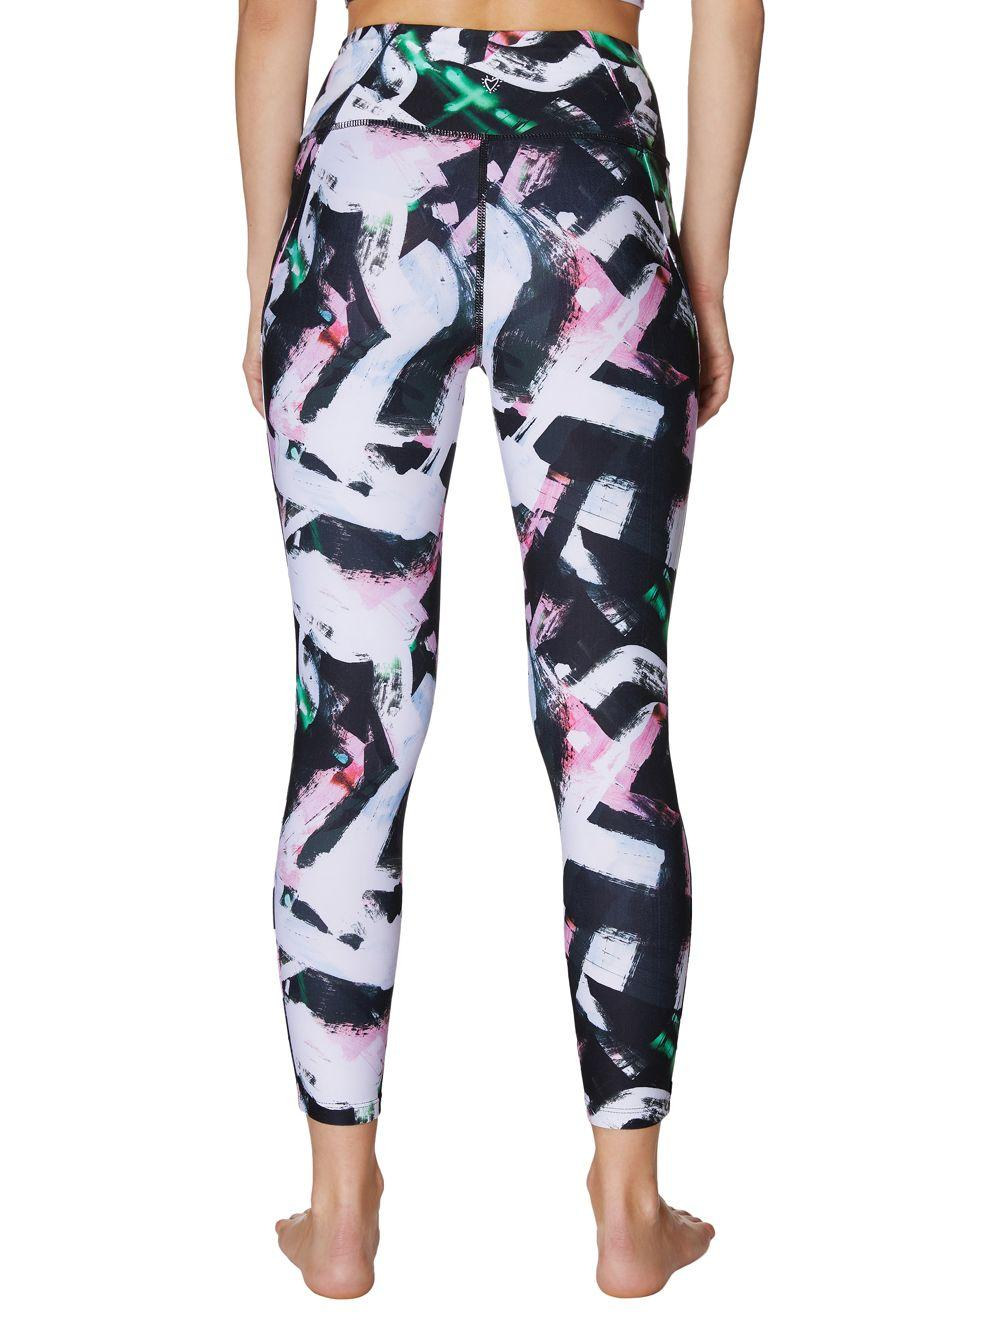 979524d49dbe0 Betsey Johnson Printed High-rise 7/8 Leggings in Black - Save 31% - Lyst